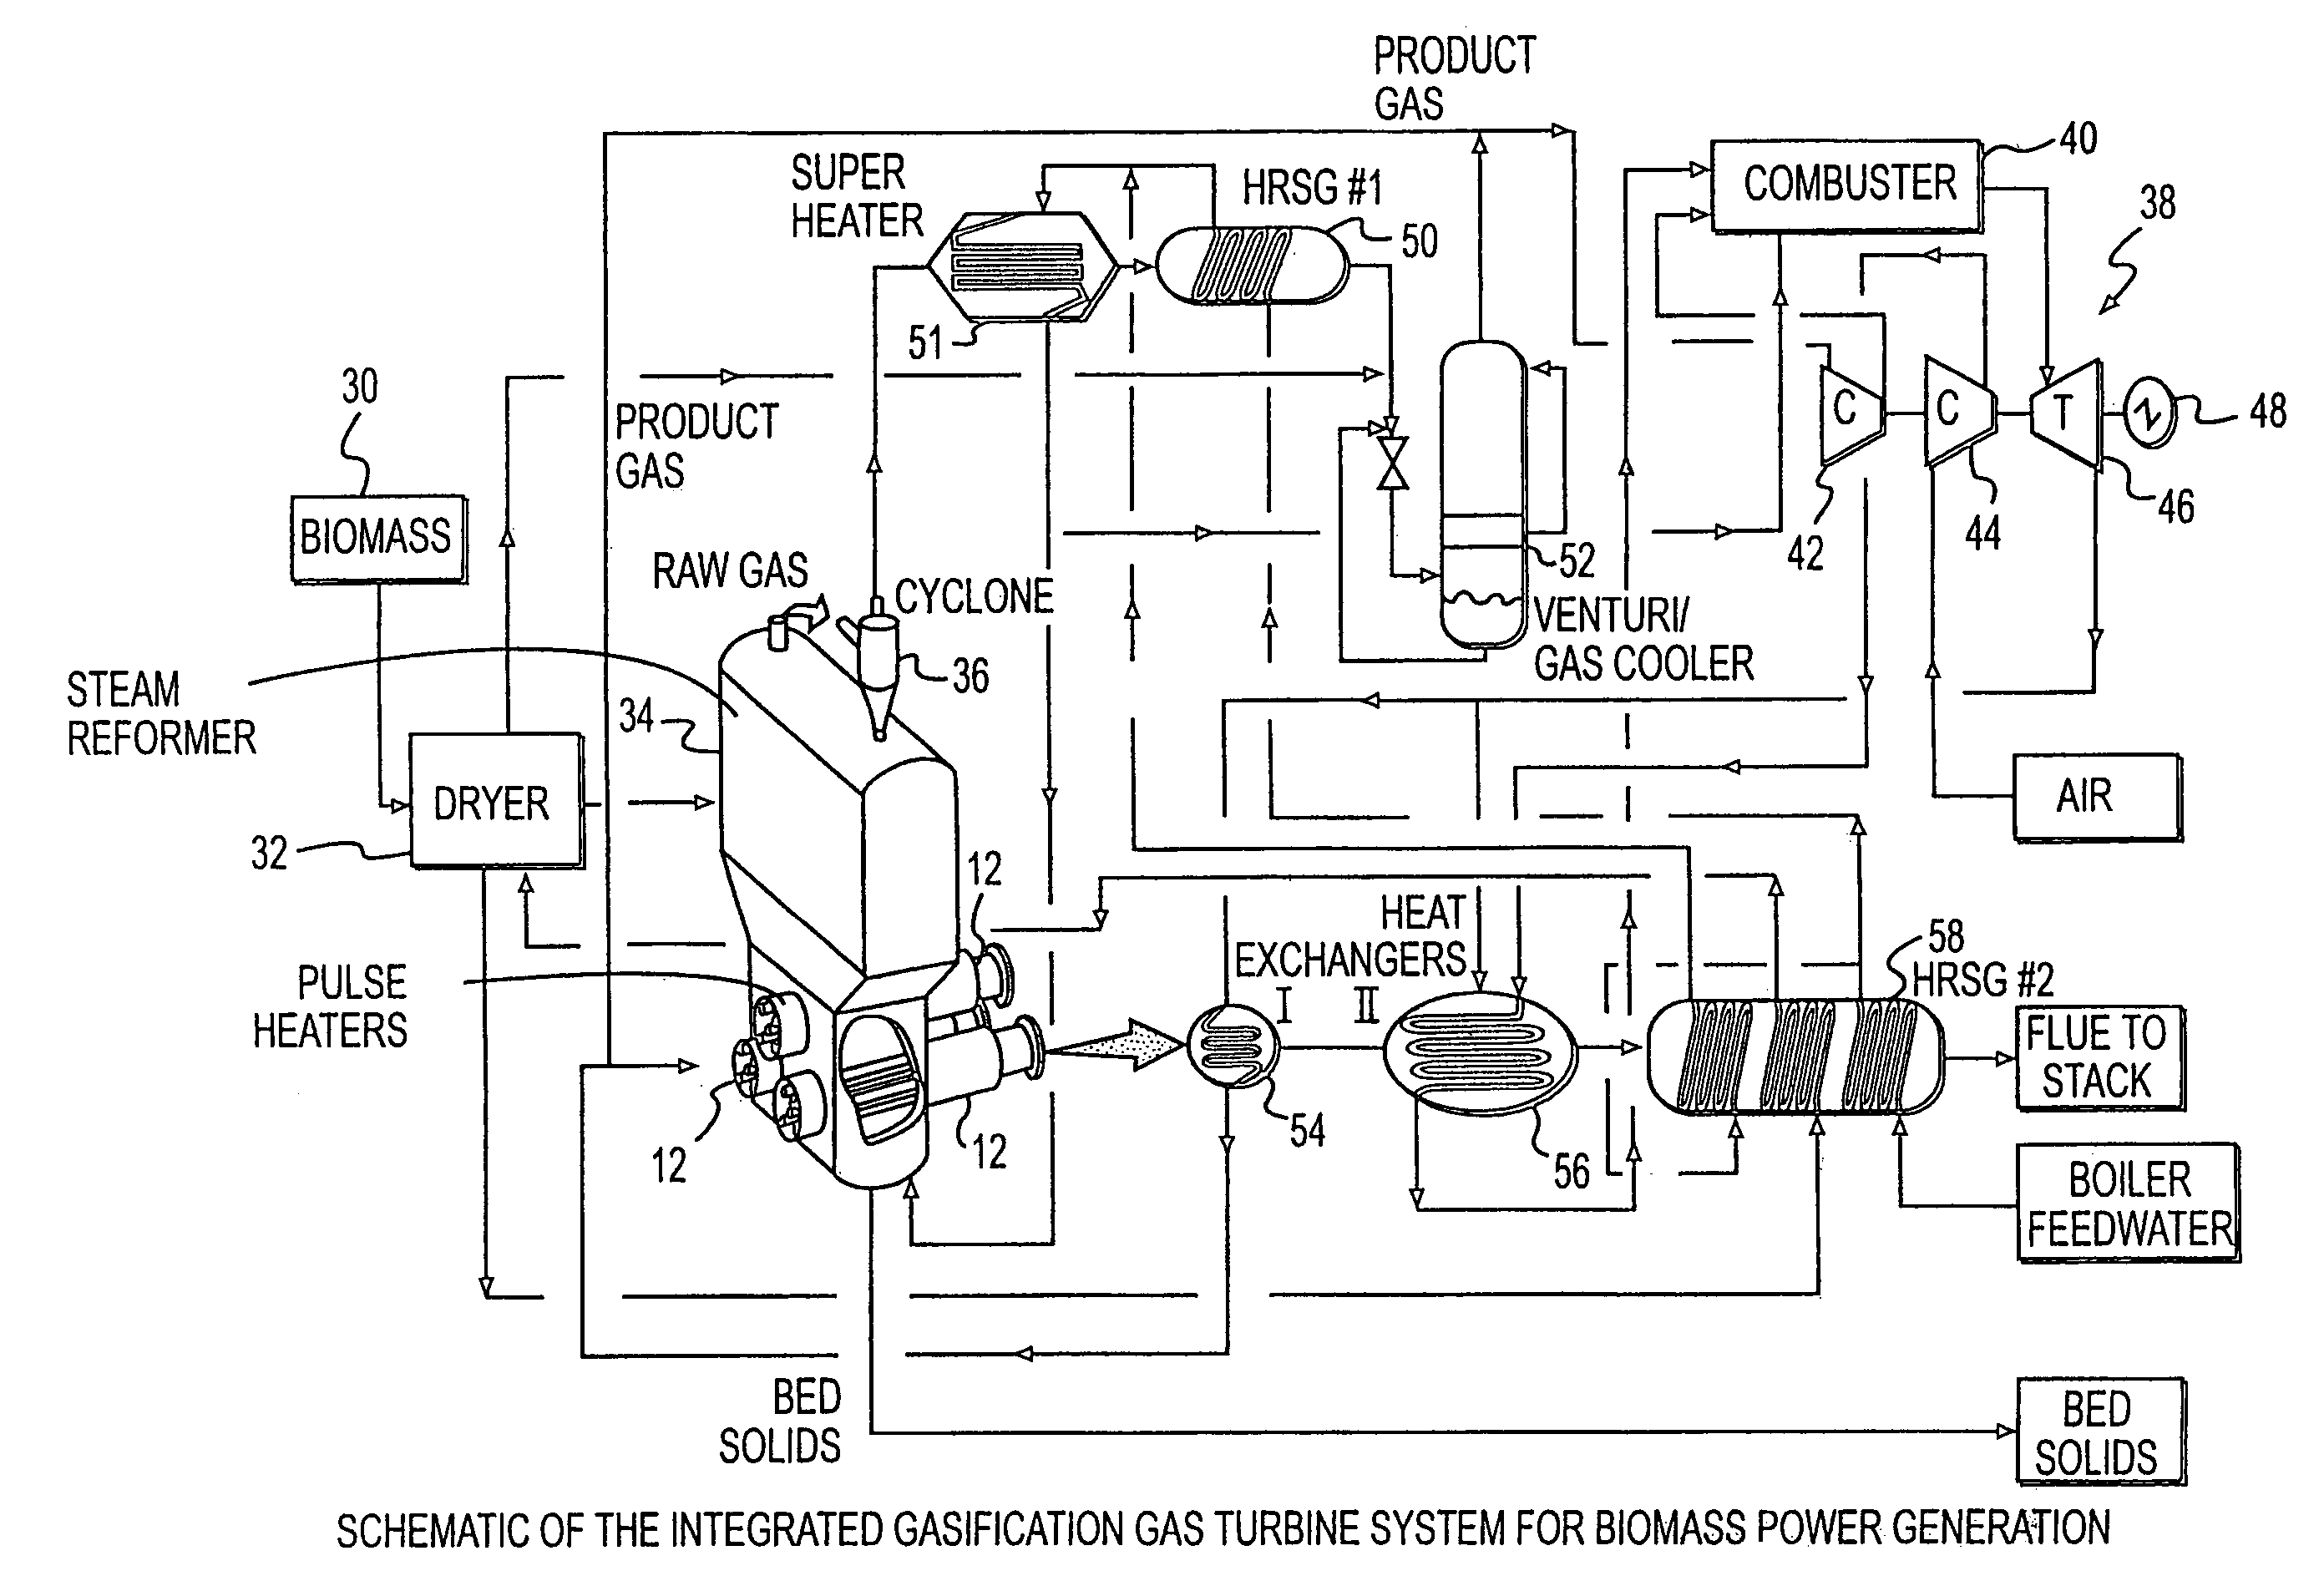 cleaver brooks boiler diagrams cleaver database wiring cleaver brooks electric boiler wiring diagram nodasystech com us07272934 20070925 d00000